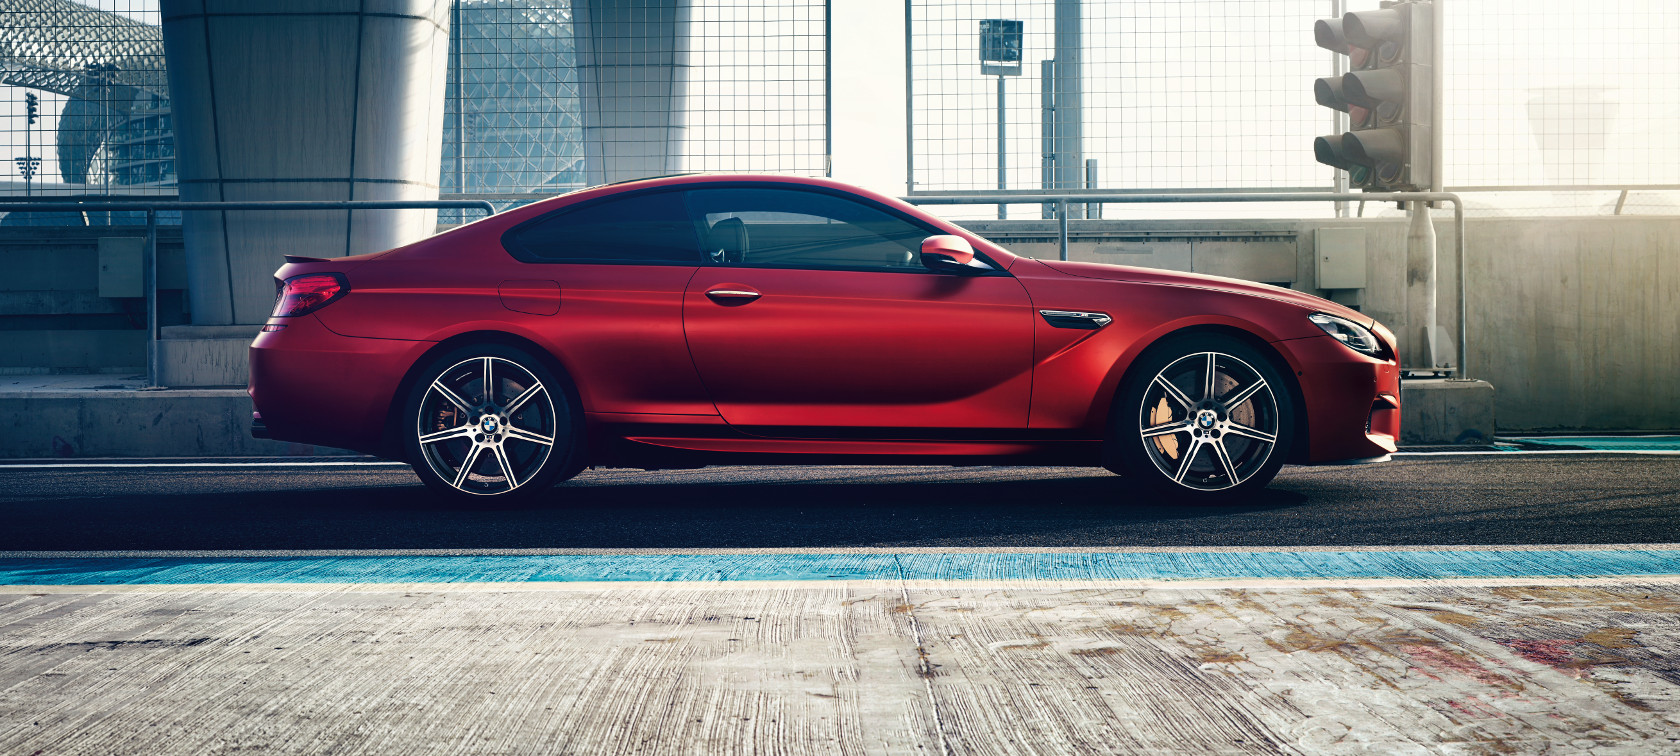 The design of the BMW M6 Coupé